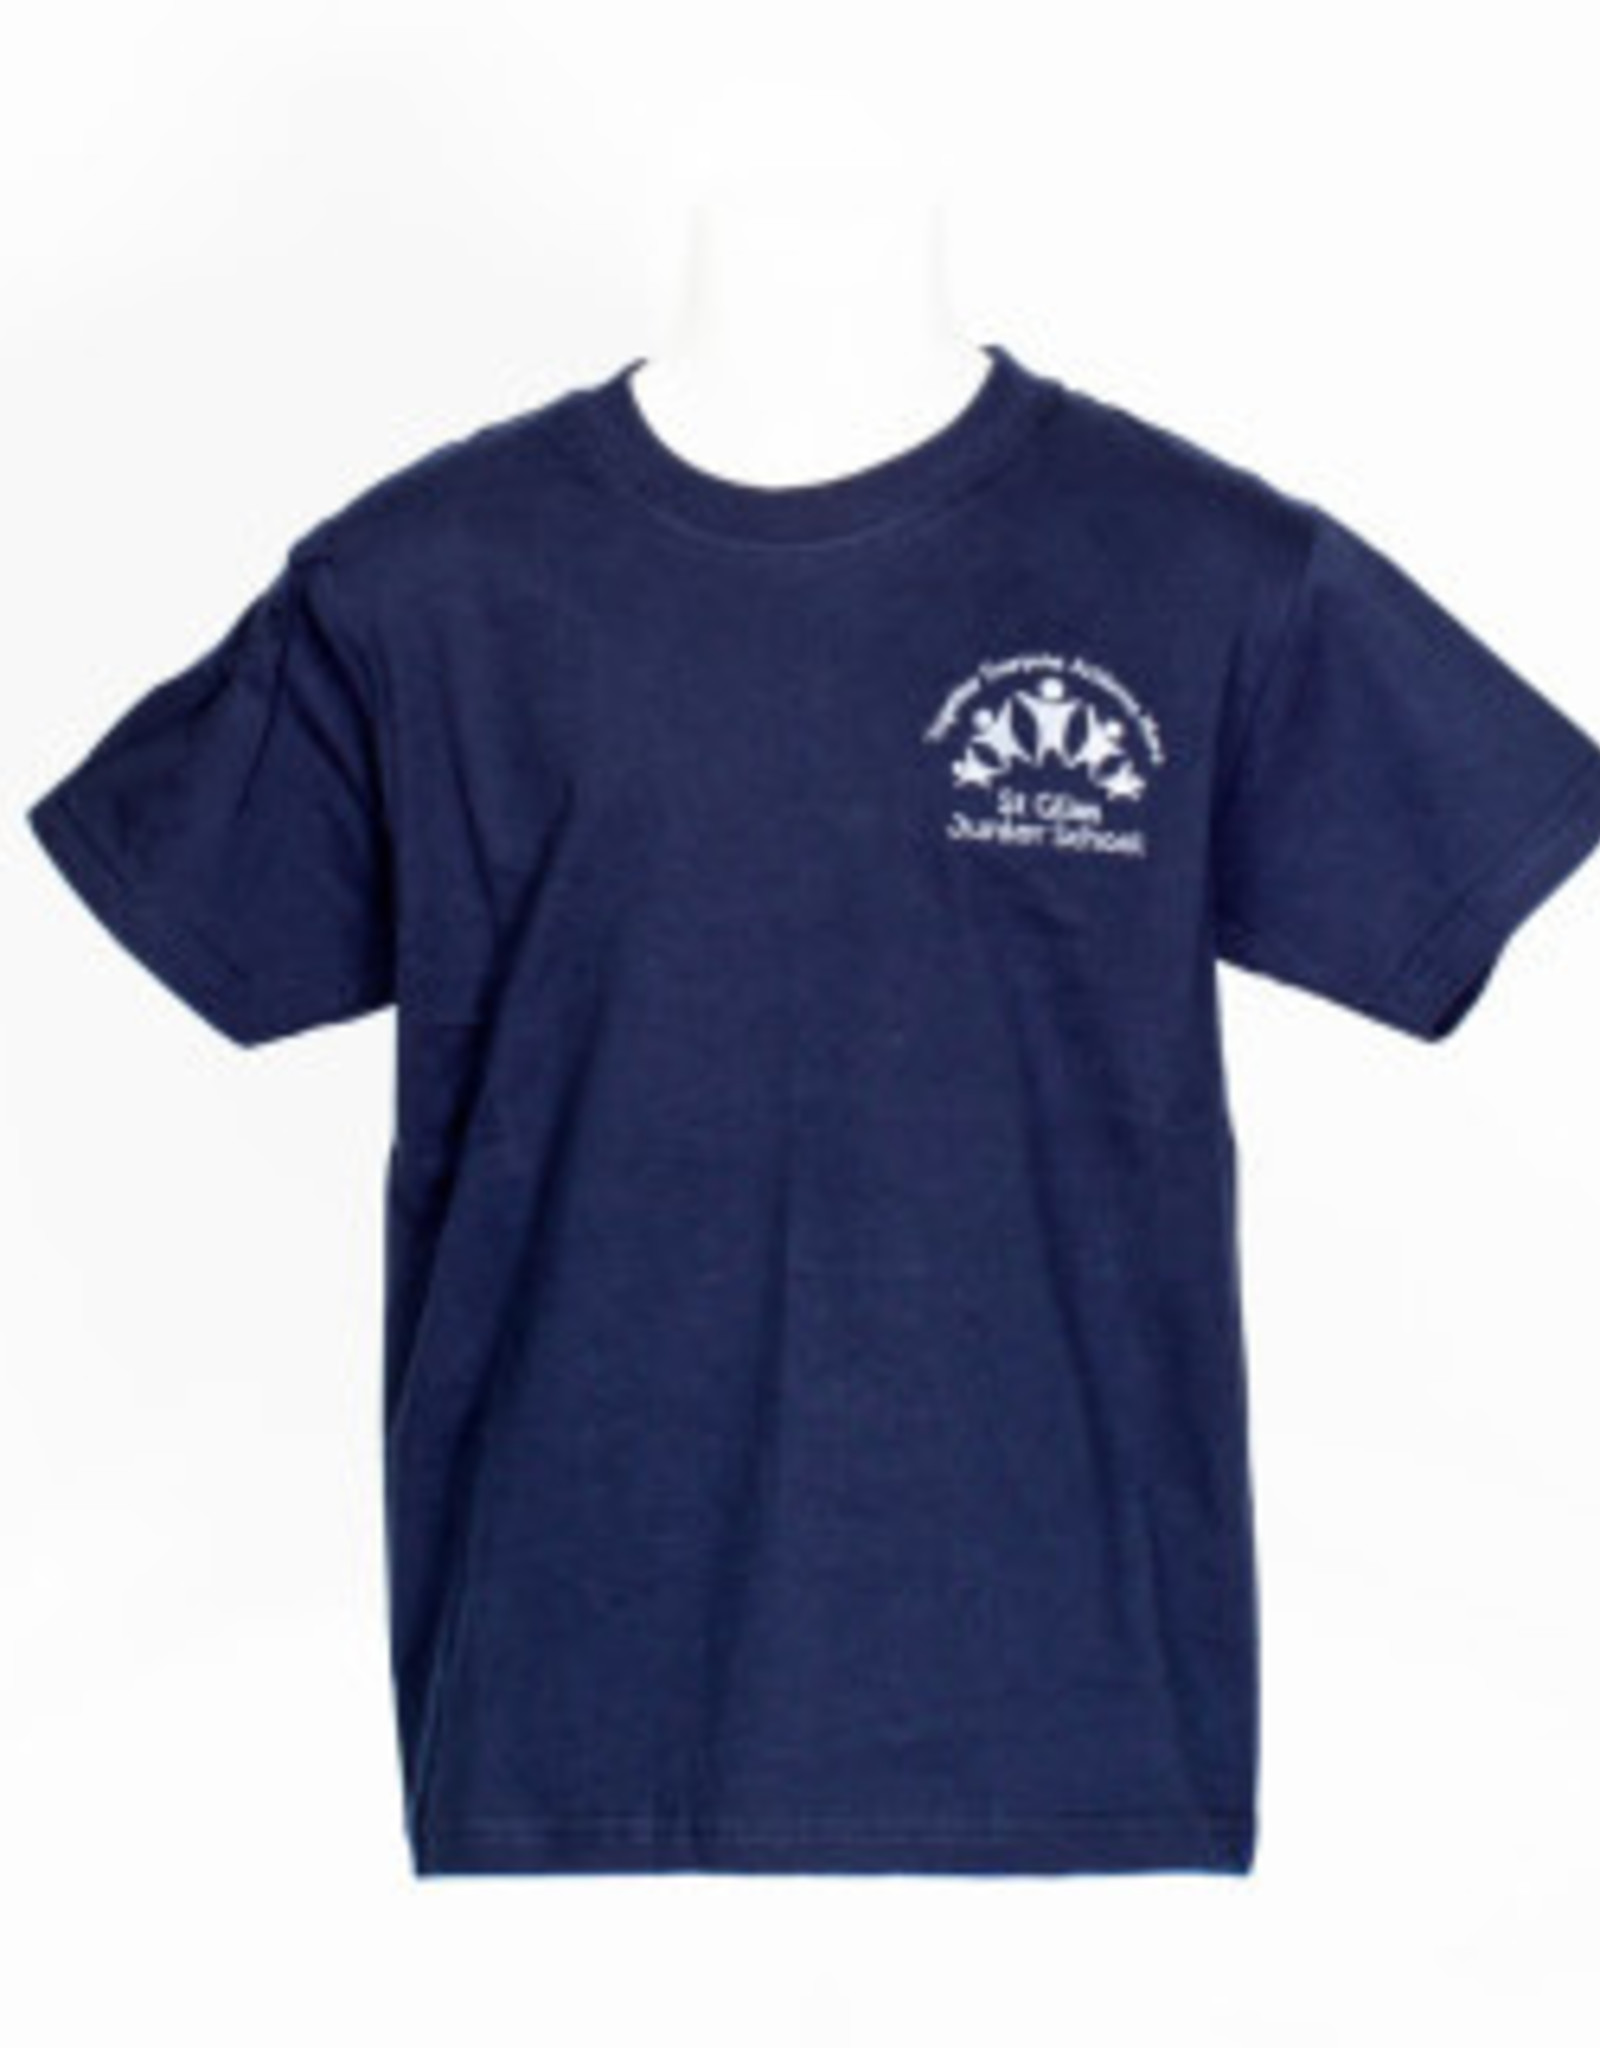 RUSSELL T-Shirt Child Size - St Giles Junior School